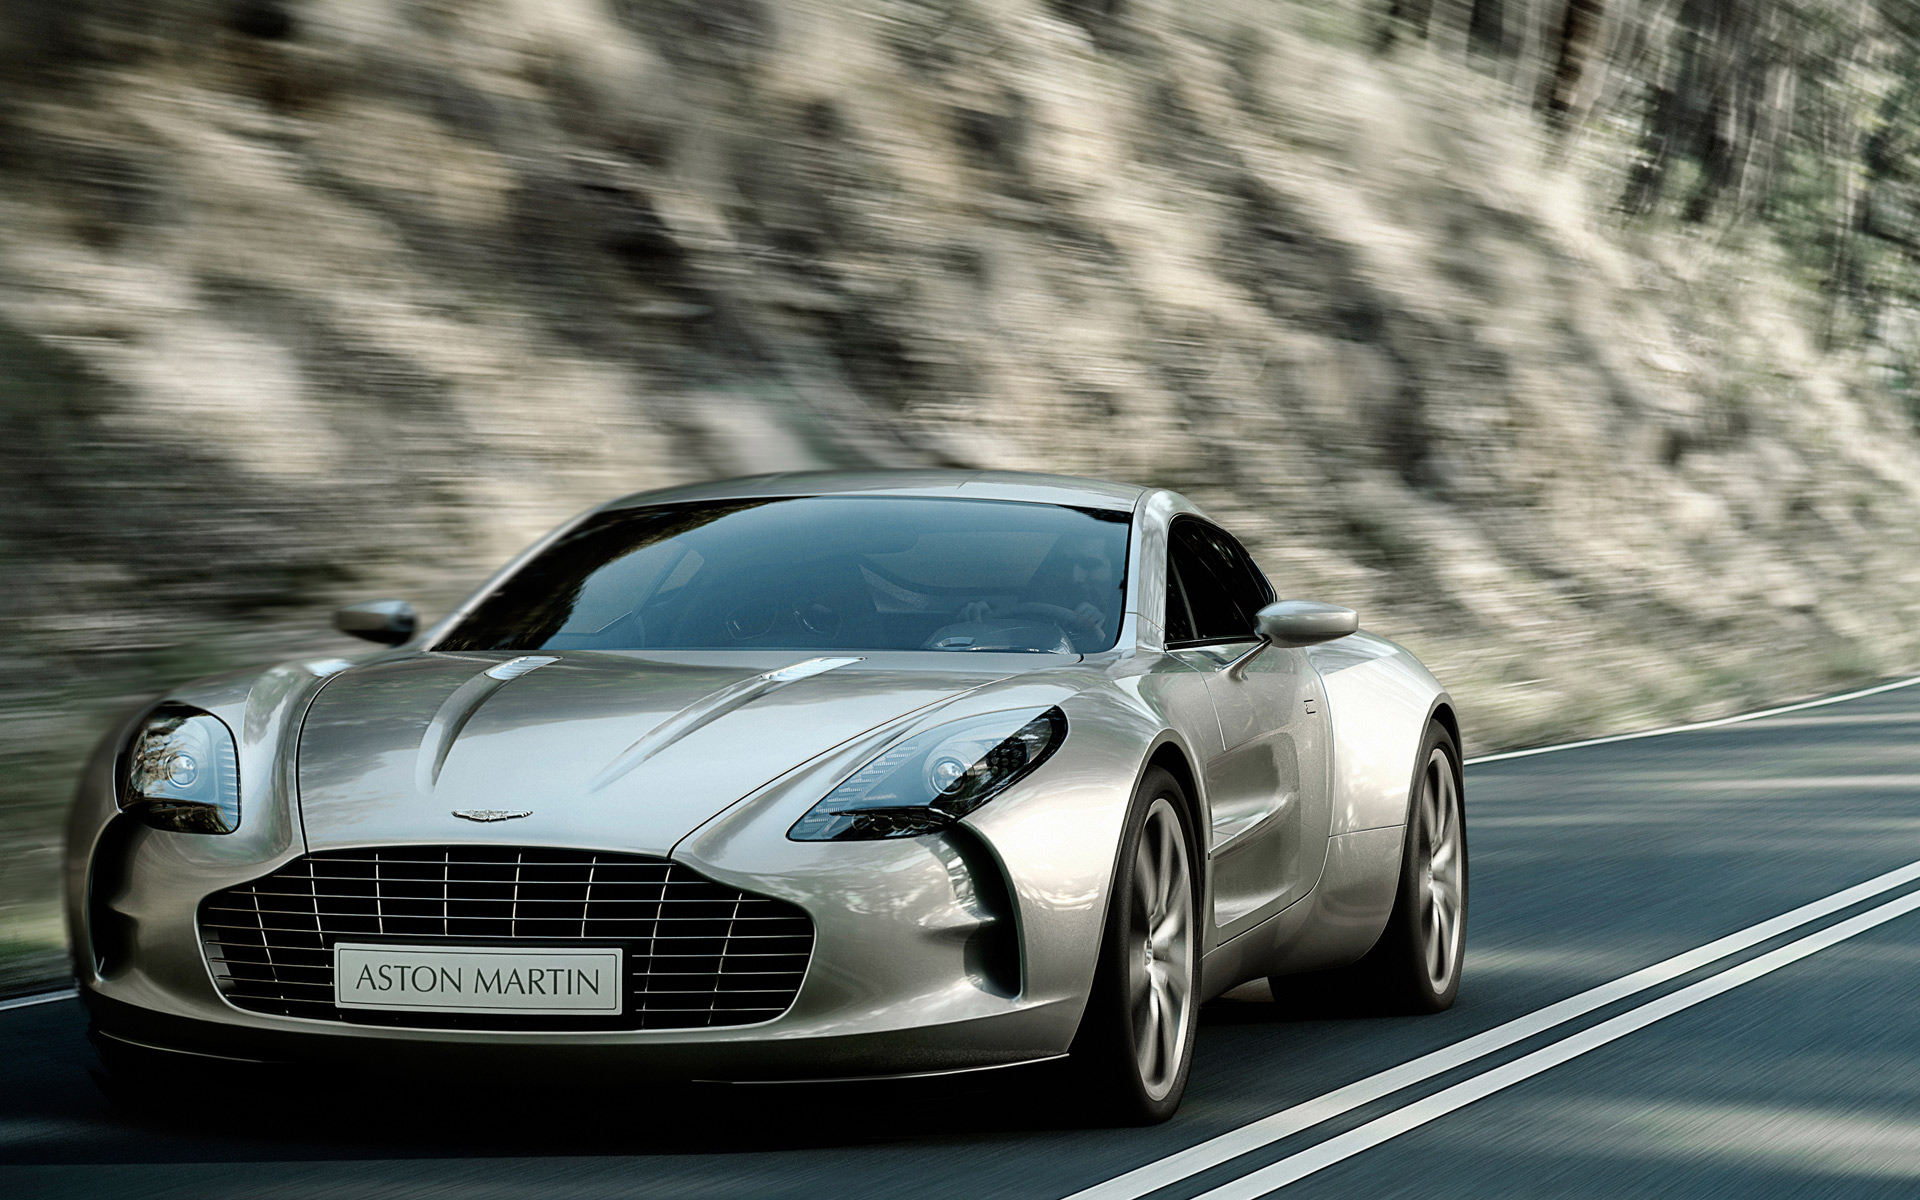 Aston martin one 77 wallpapers pictures images aston martin one 77 widescreen wallpaper publicscrutiny Image collections